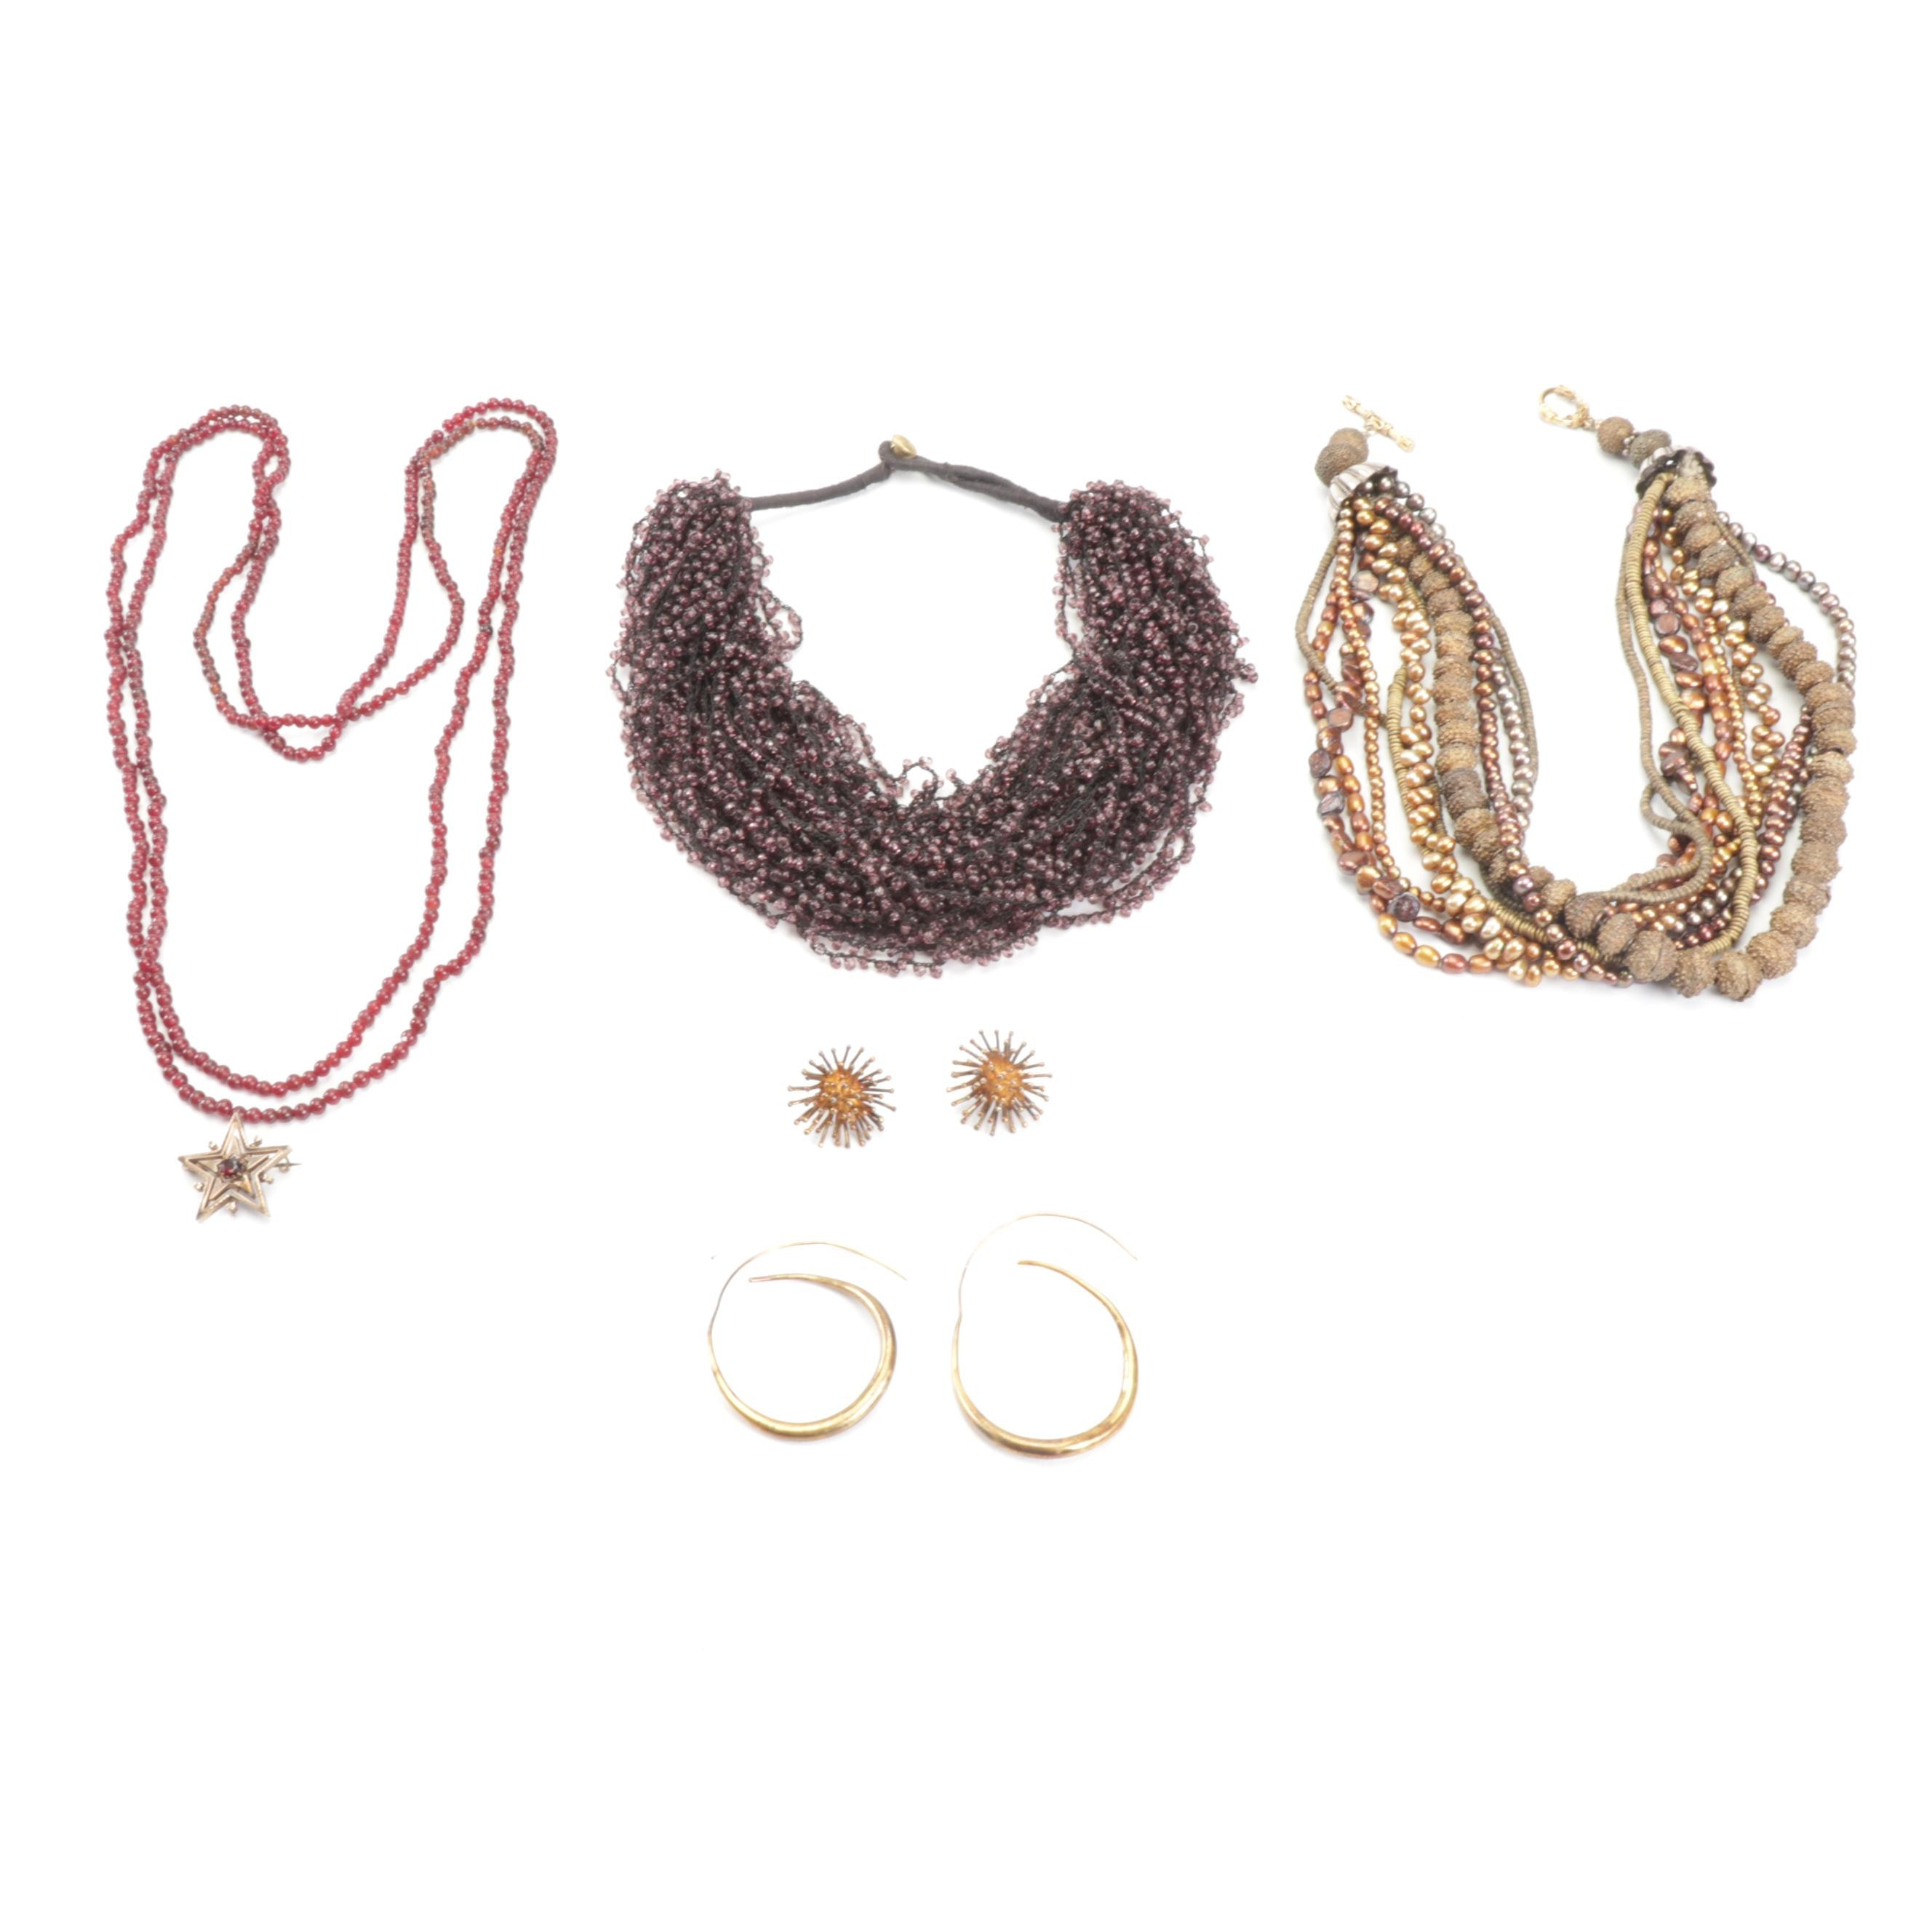 Multi-Strand Beaded Necklaces and Brass Tone Earrings